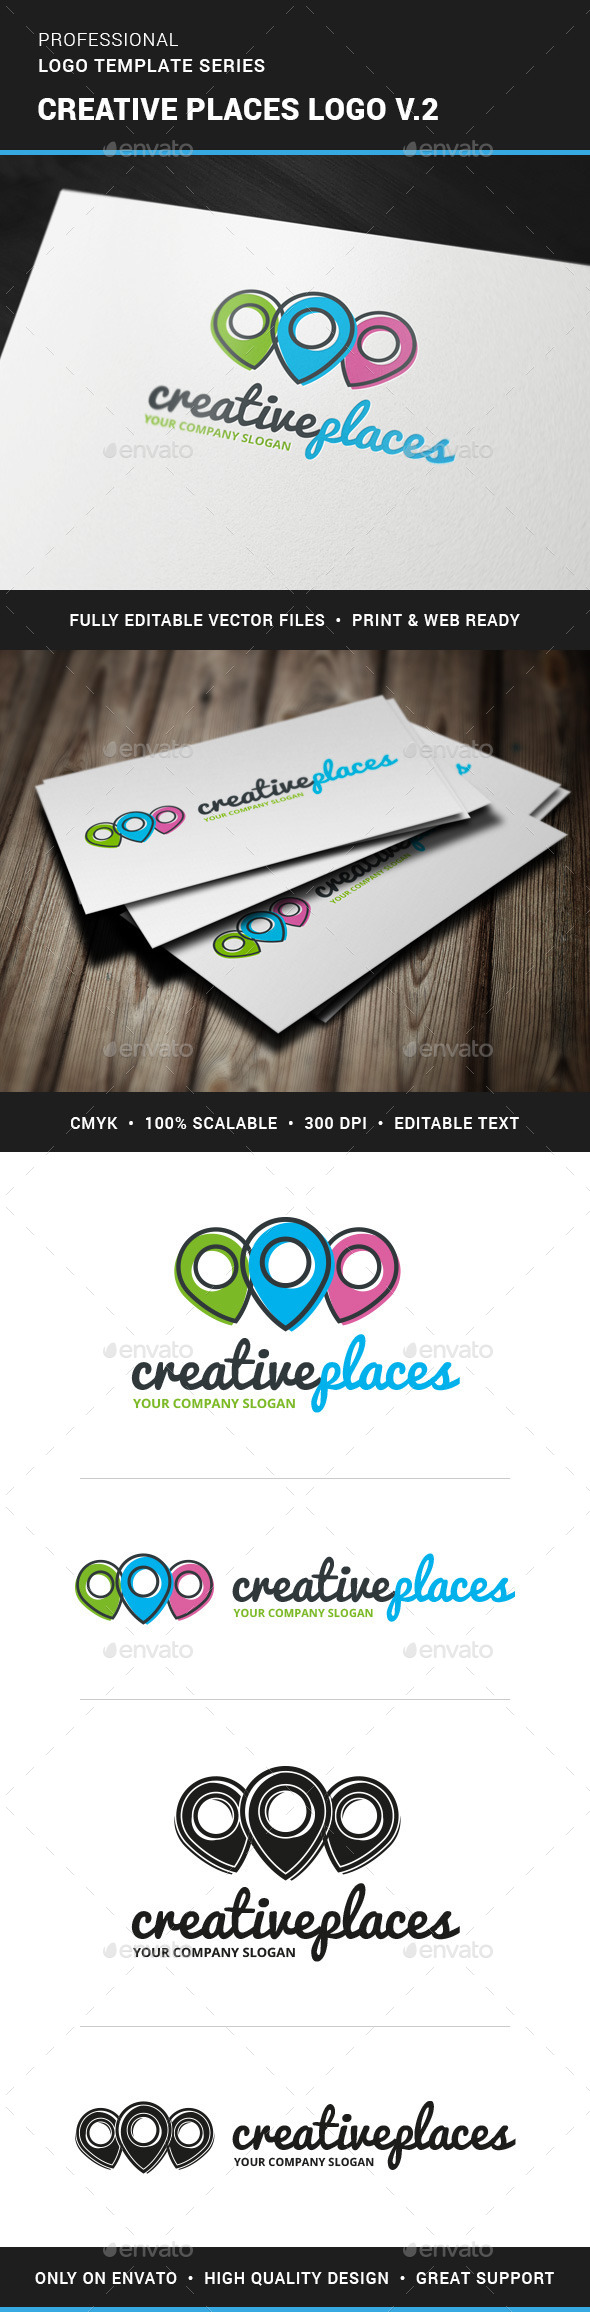 GraphicRiver Creative Places Logo v2 11388278